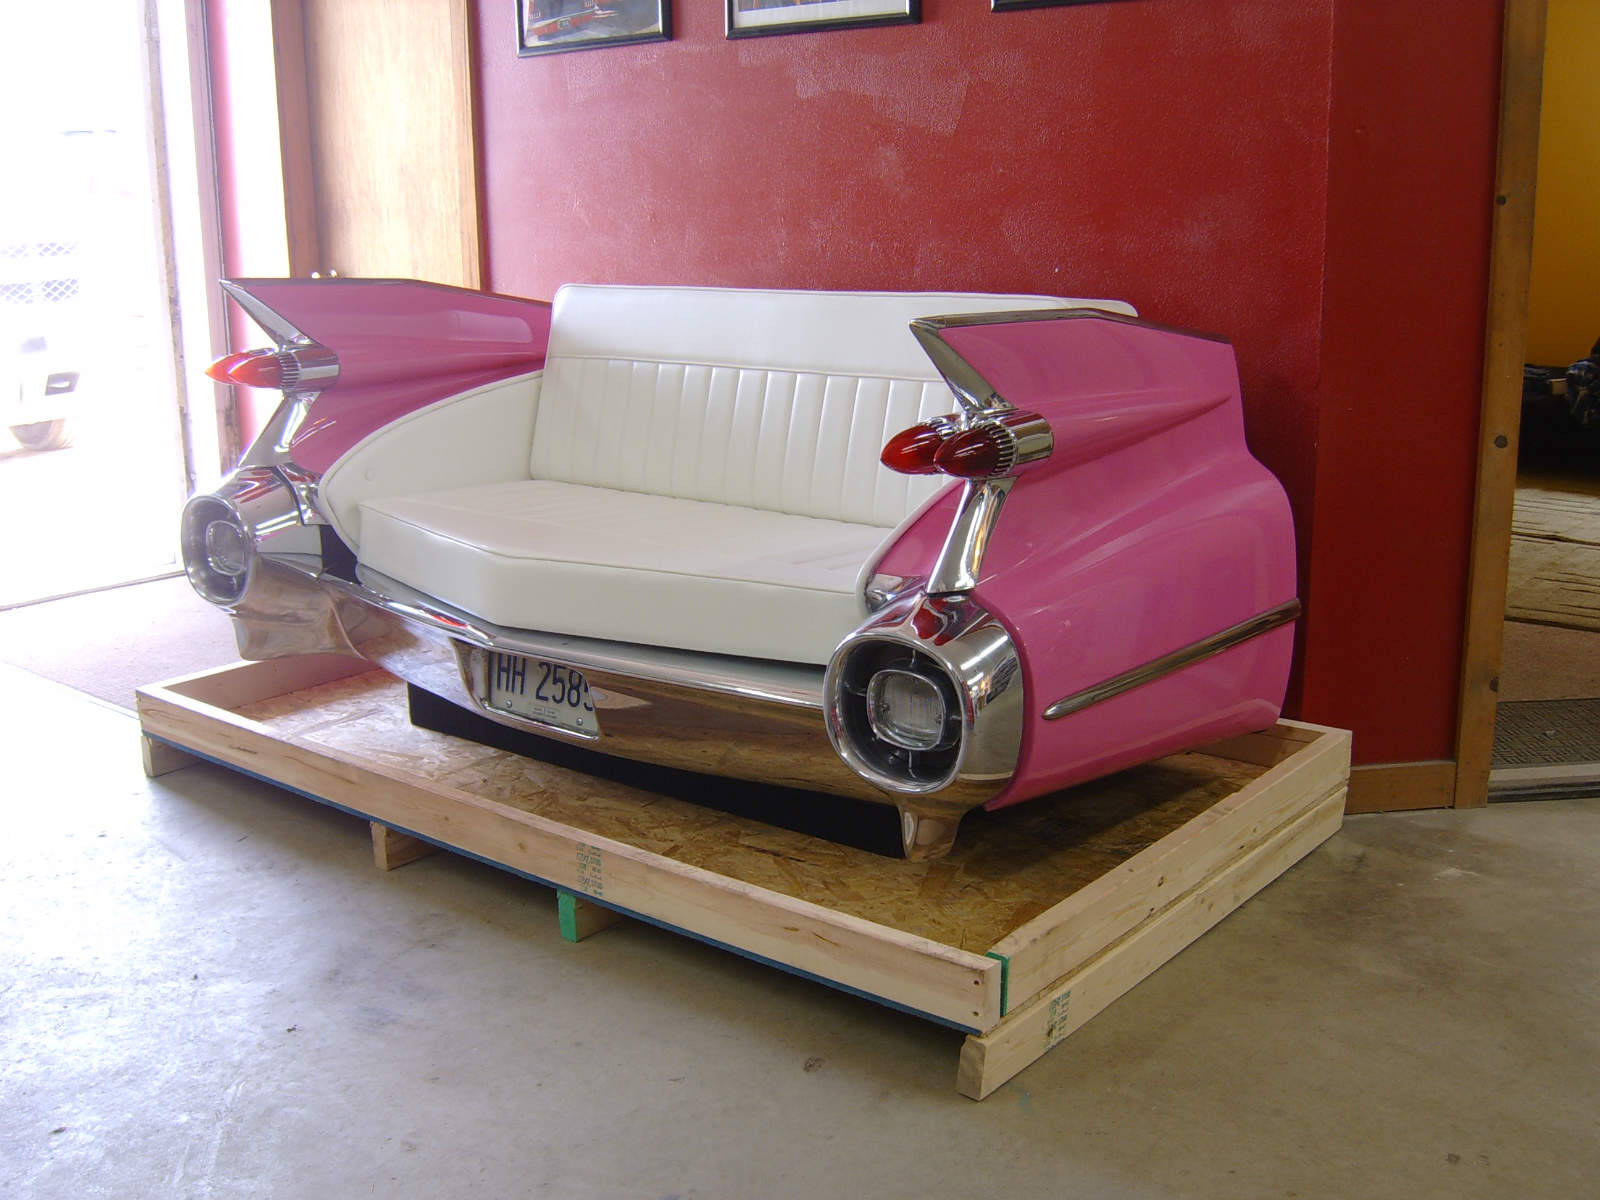 1959 Pink Cadillac Couch NO Car NO Fun Muscle Cars And